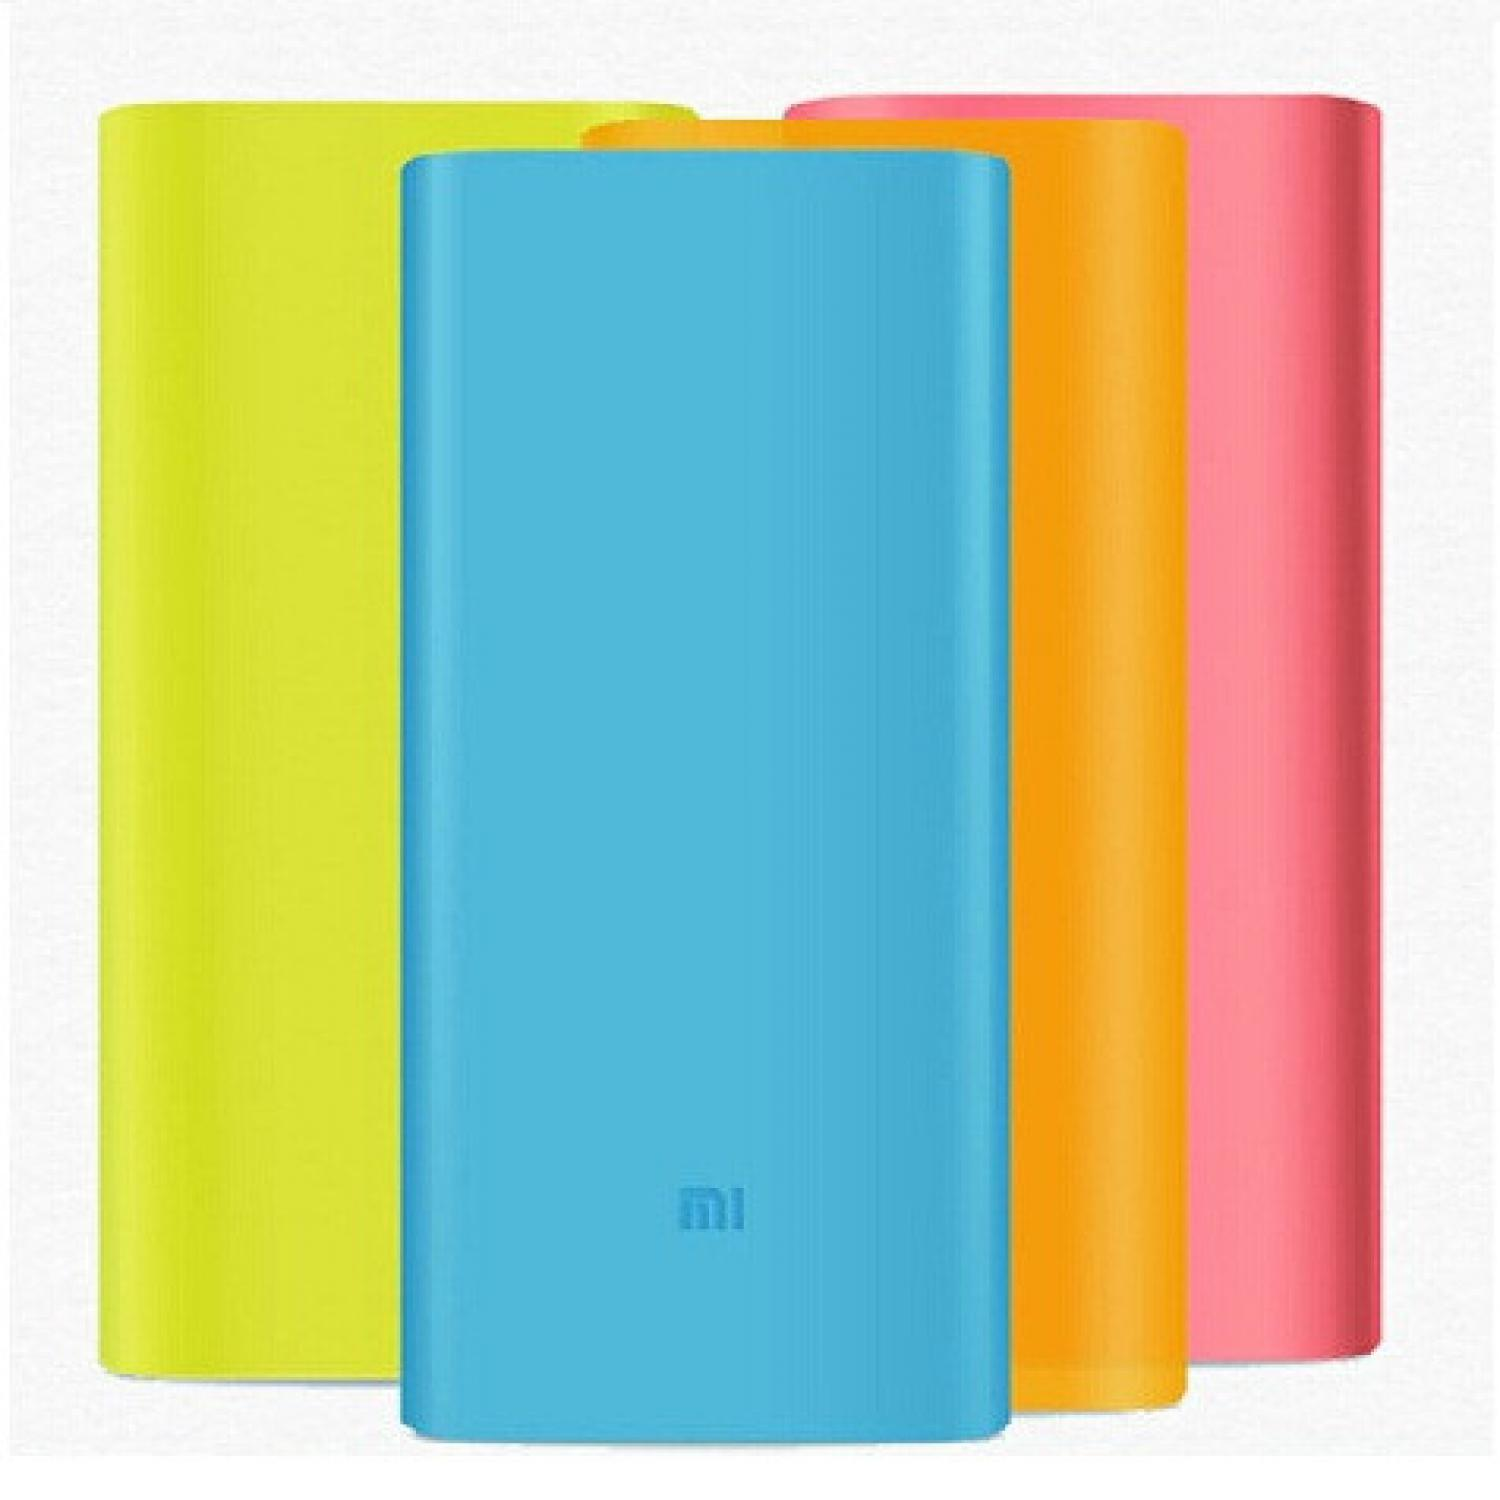 Best Seller!!! Silicon Case Cover for Xiaomi Power Bank (OEM) Terbaik Murah